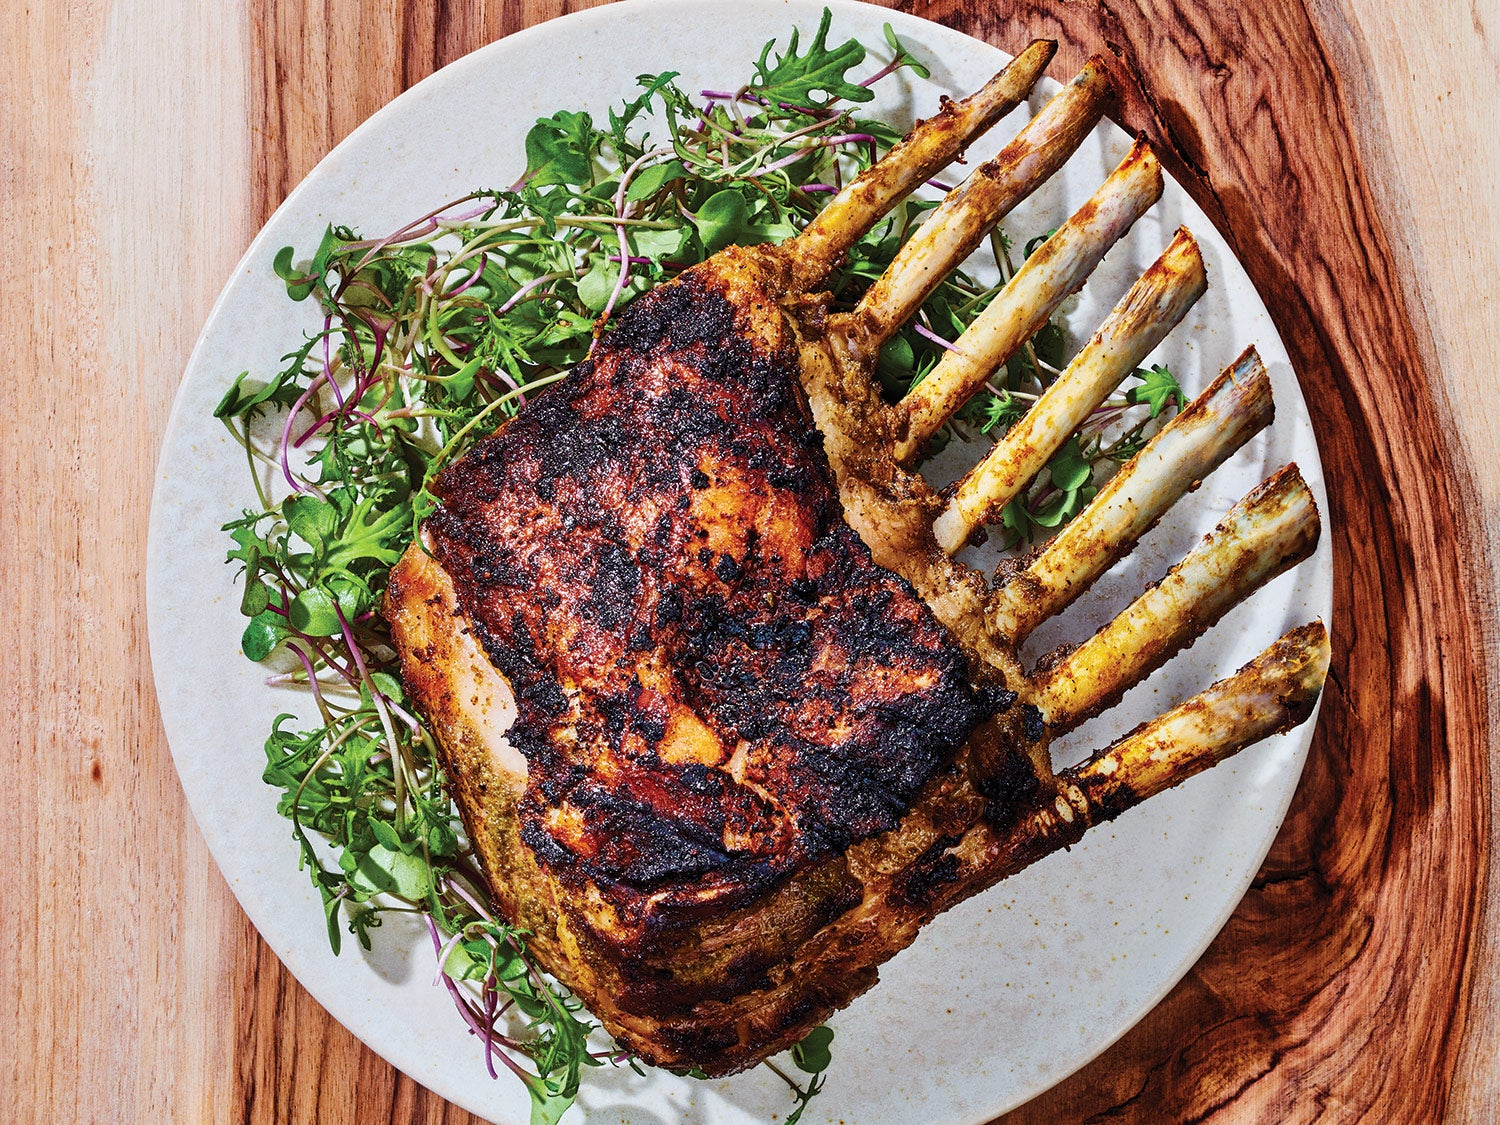 Grilled Rack of Lamb with Garlic and Herbs